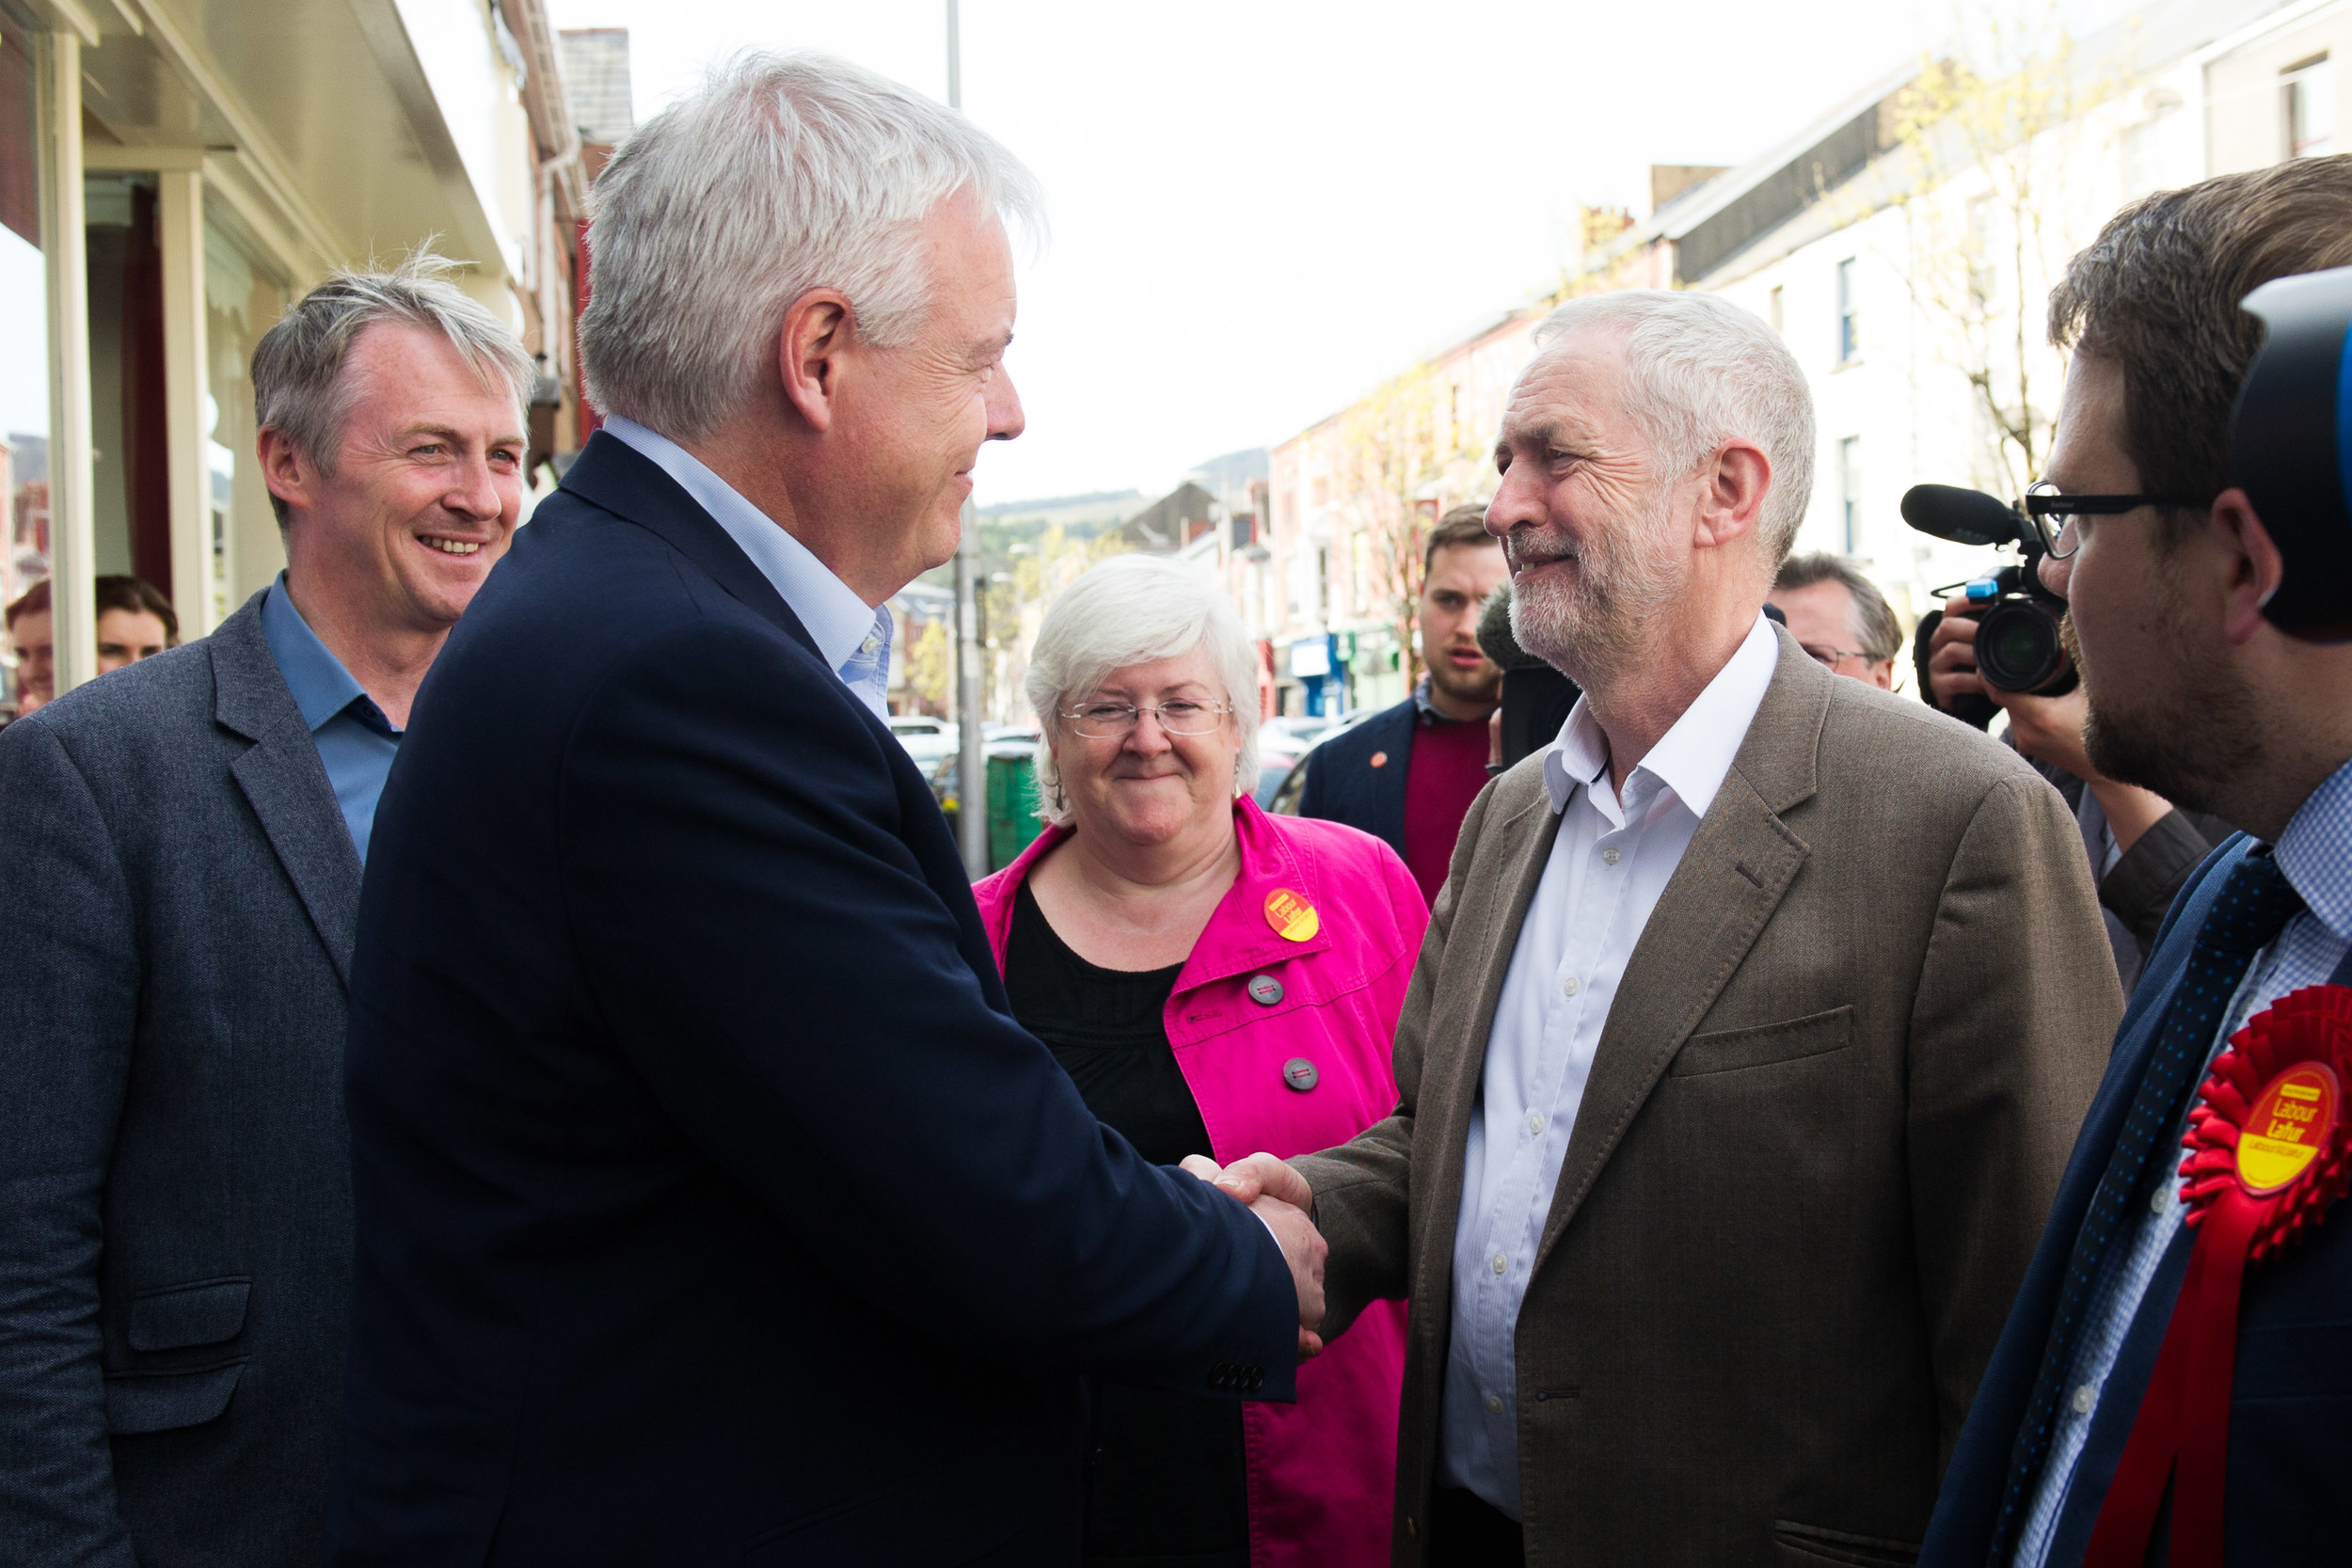 First Minister of Wales Carwyn Jones (L) shakes Labour leader Jeremy Corbyn's (R) hand